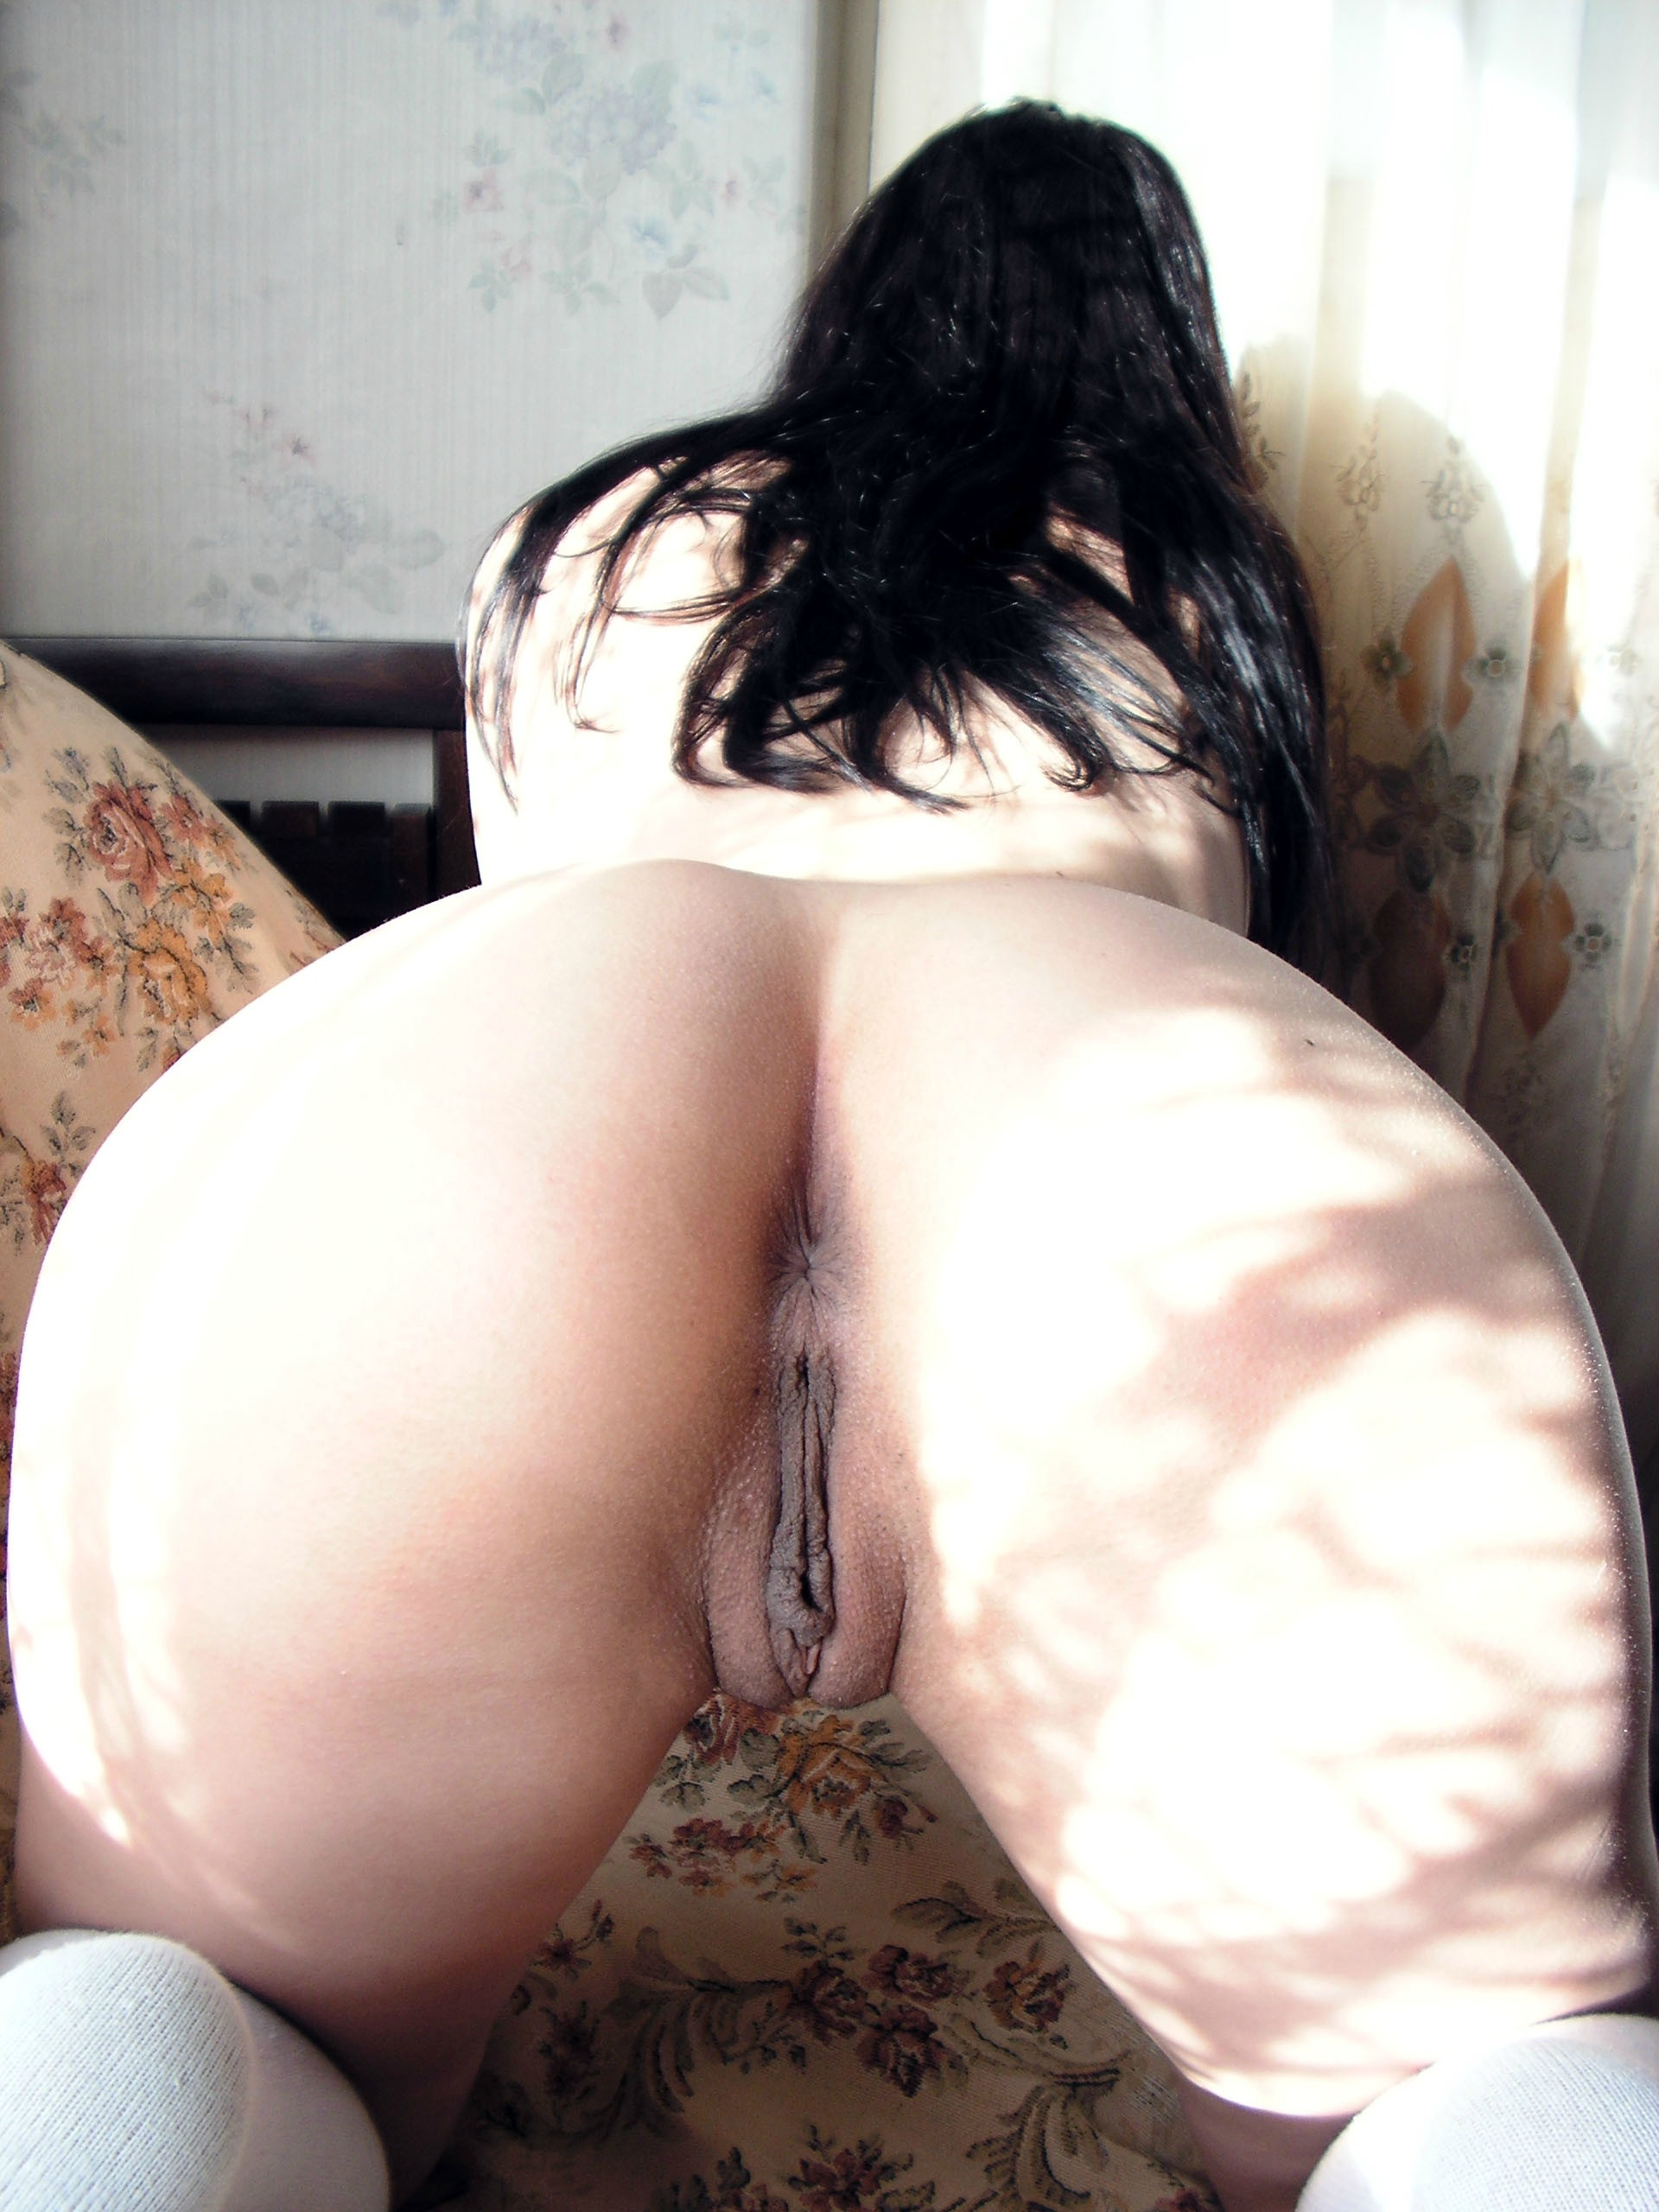 legs pics with hot mature asses